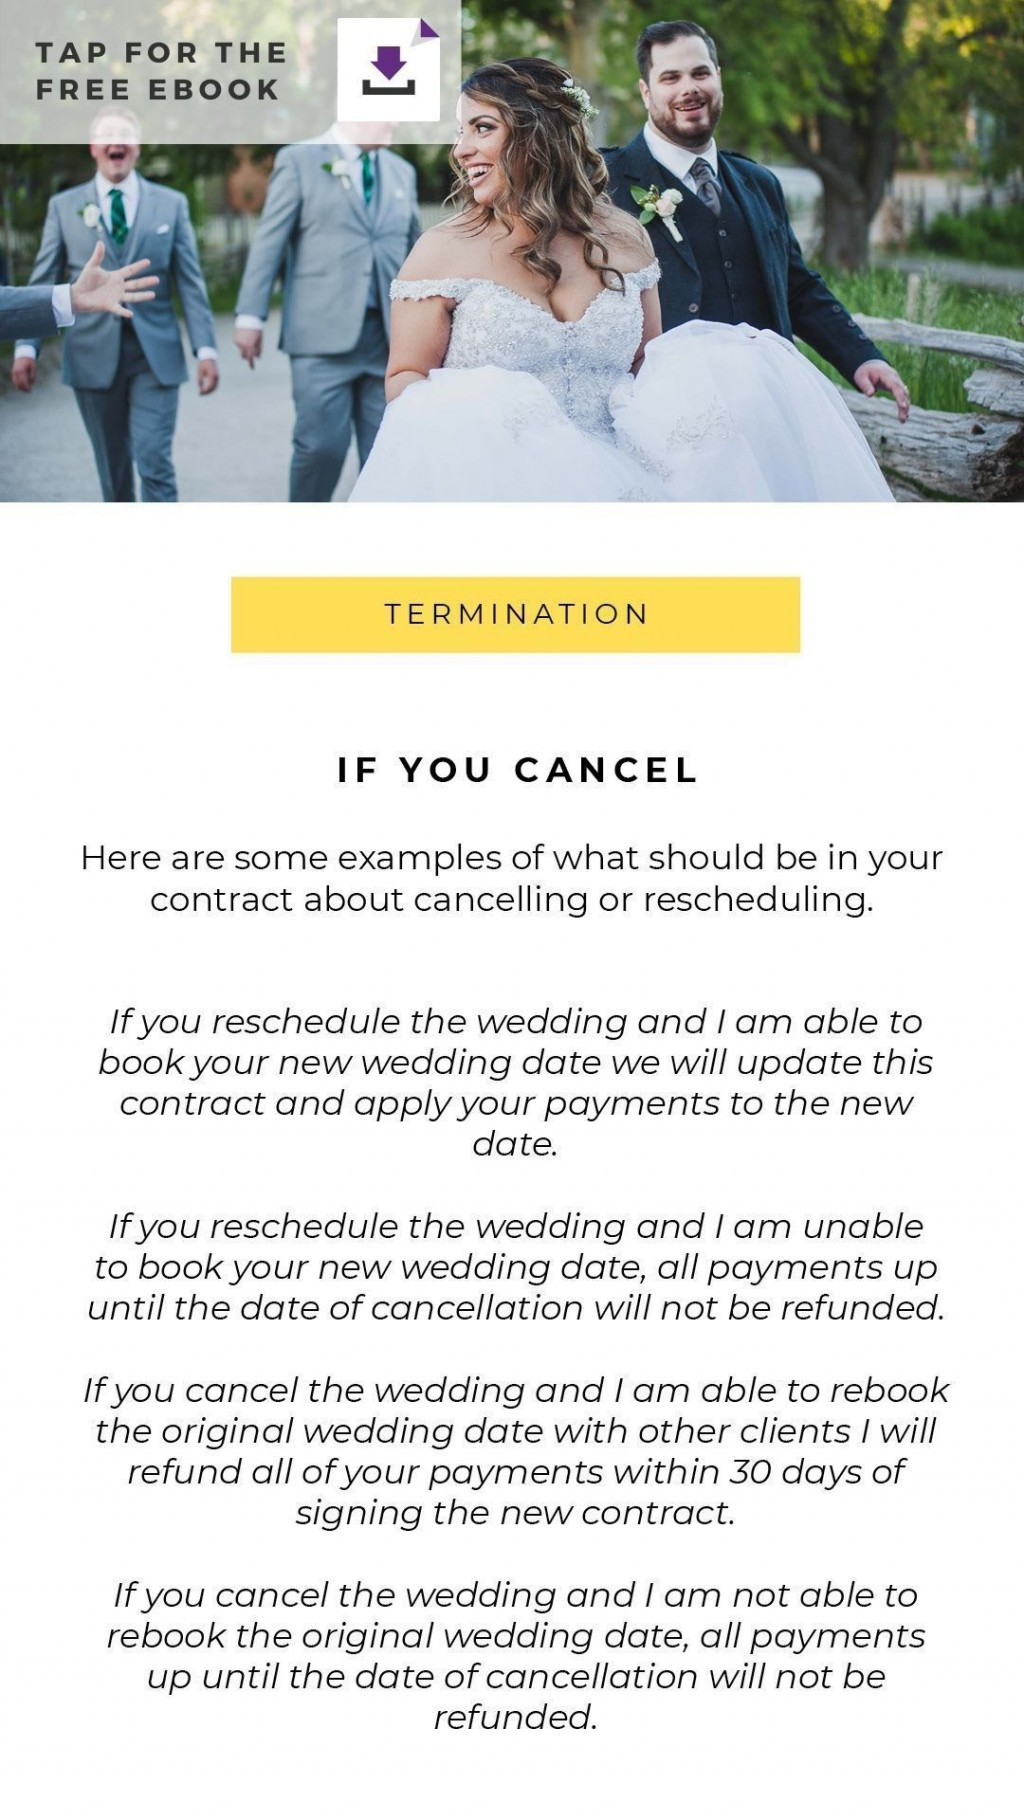 001 Outstanding Wedding Photography Contract Template Canada Idea Large